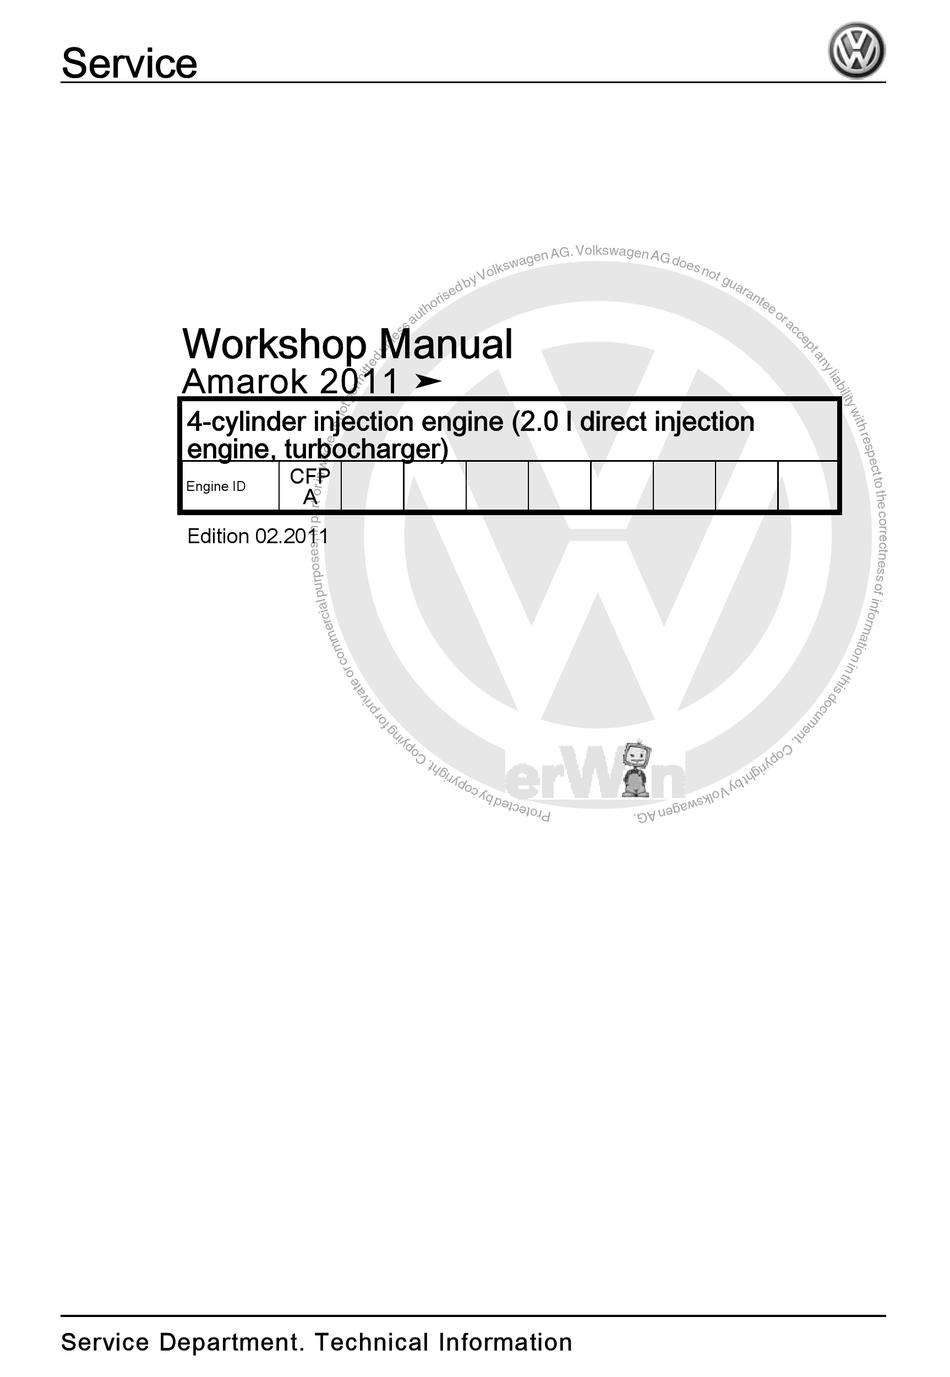 VOLKSWAGEN AMAROK 2011 WORKSHOP MANUAL Pdf Download